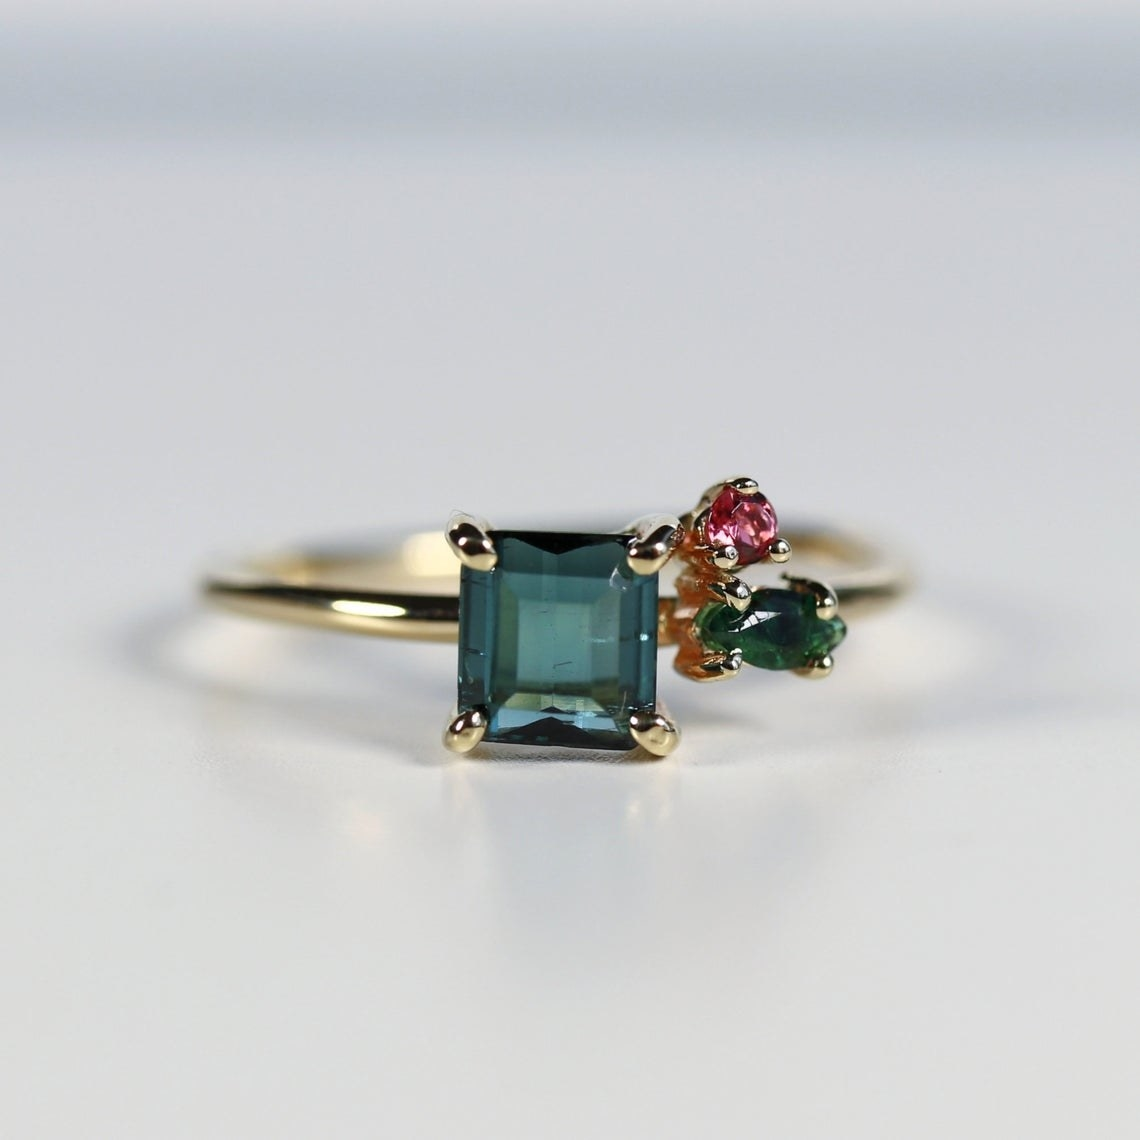 square green stone with pin and green teardrop stones on the right on simple gold band